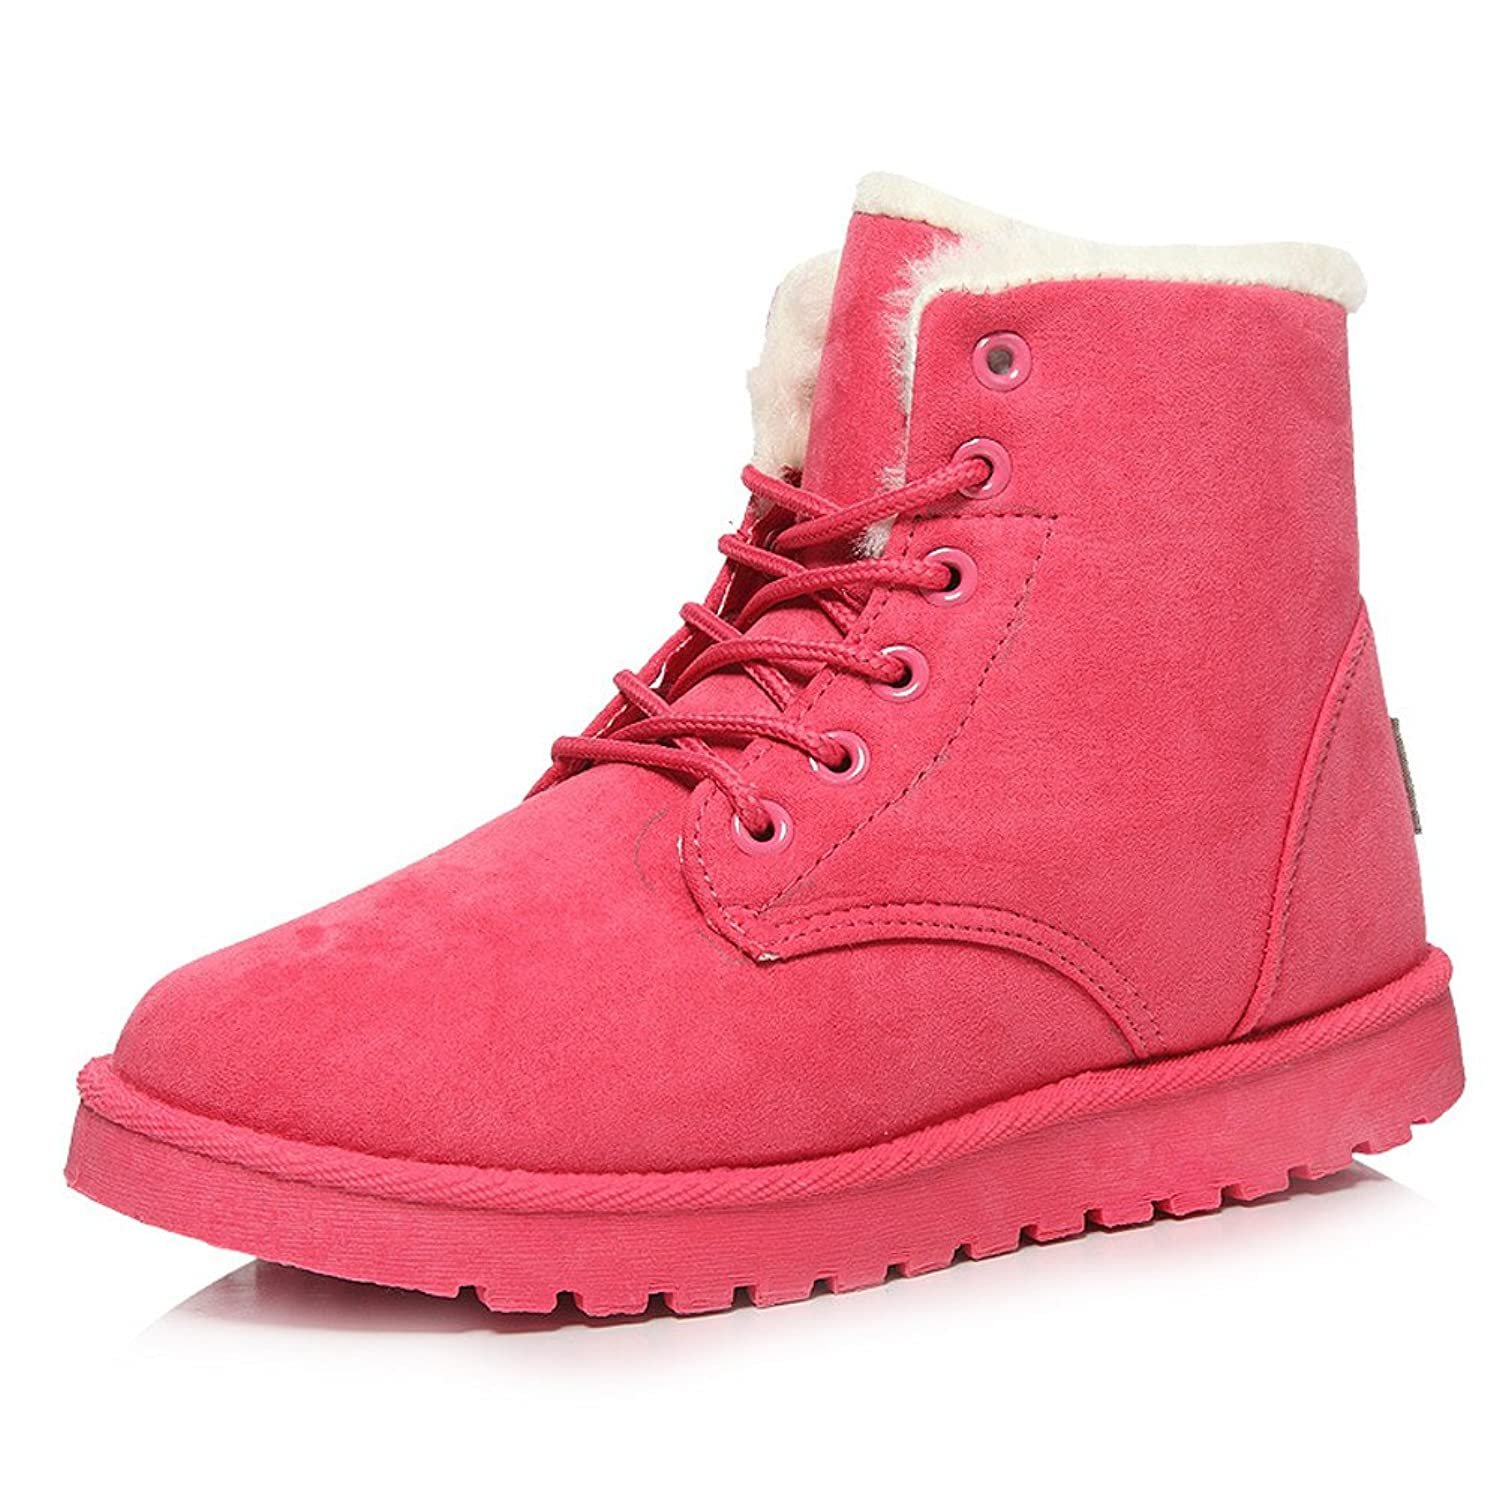 D-YUN Women's Fashion Boots Comfort Shoes Flat Lace UP ankle Winter Warm Snow Boot